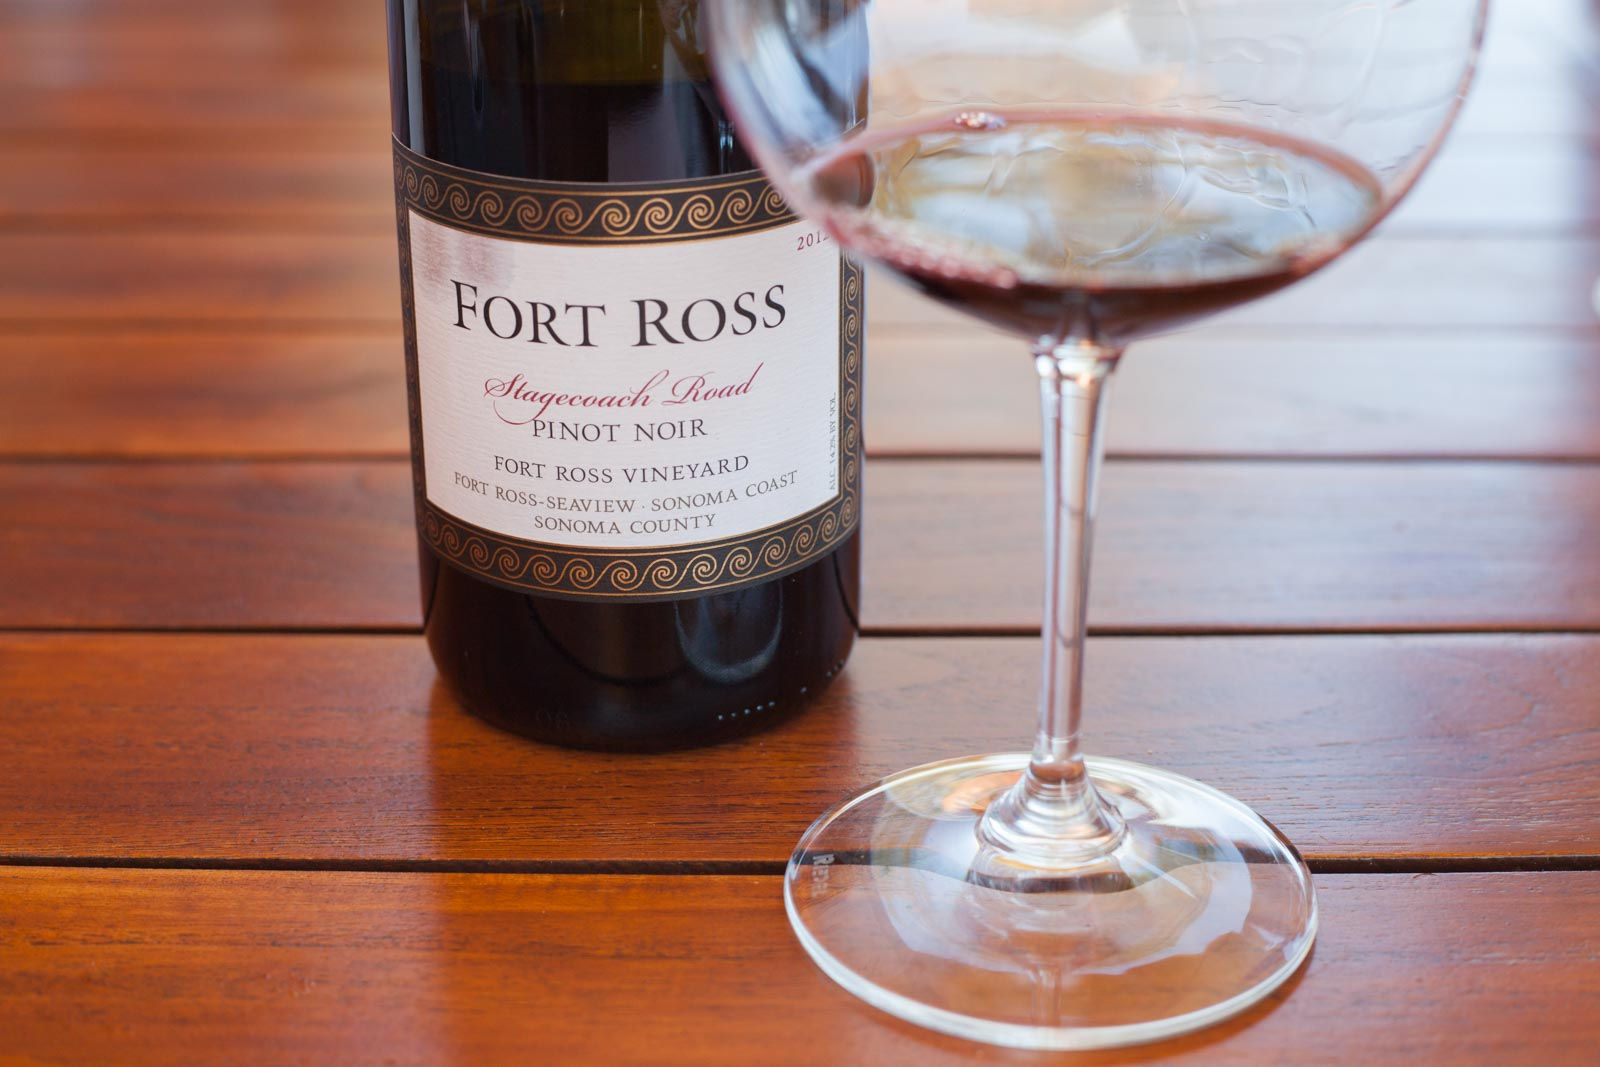 2012 Fort Ross Vineyard Stagecoach Road Pinot Noir. ©Kevin Day/Opening a Bottle